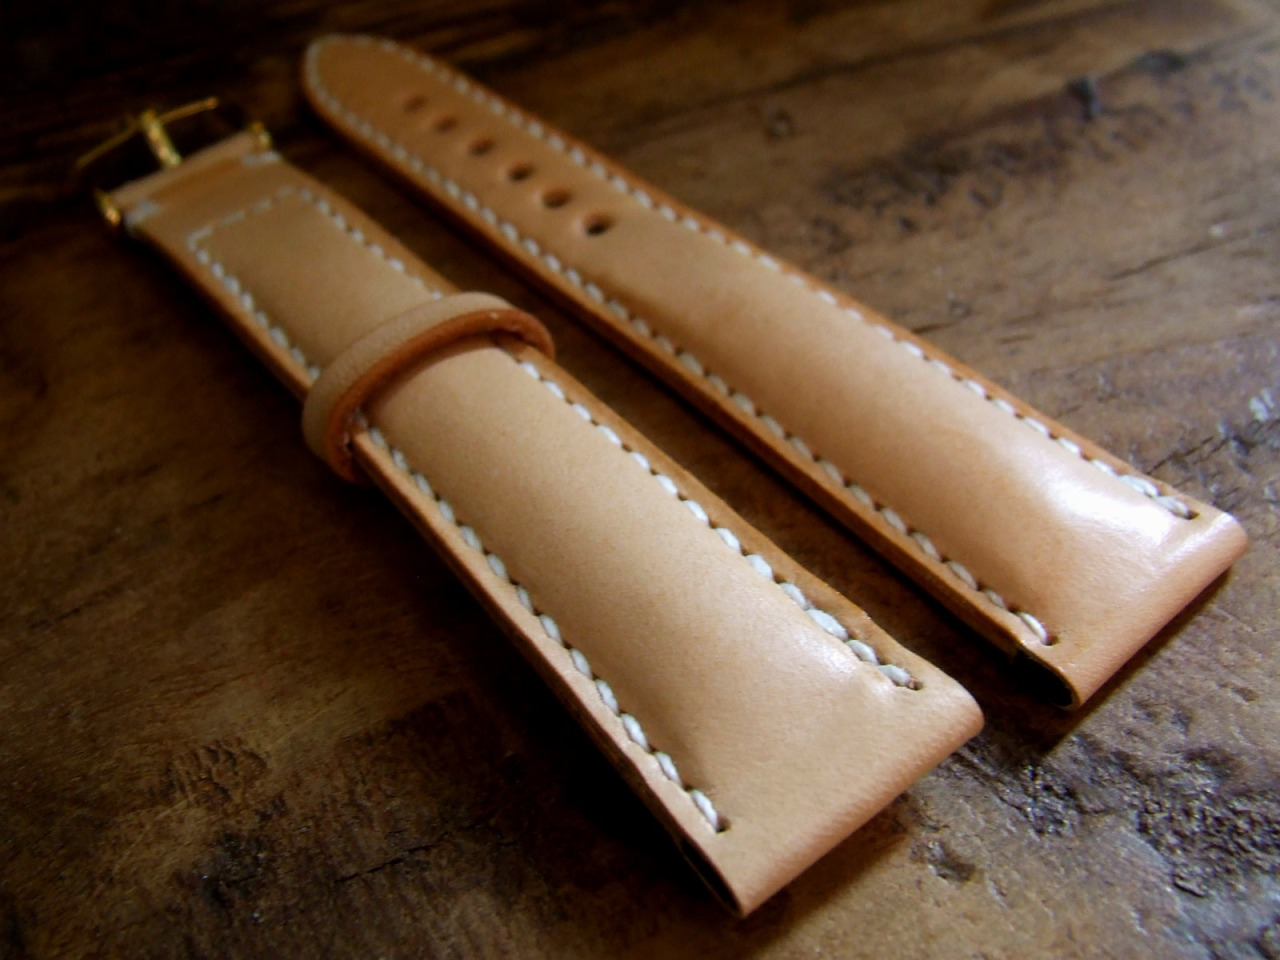 Reproduction of a vintage Rolex watch strap